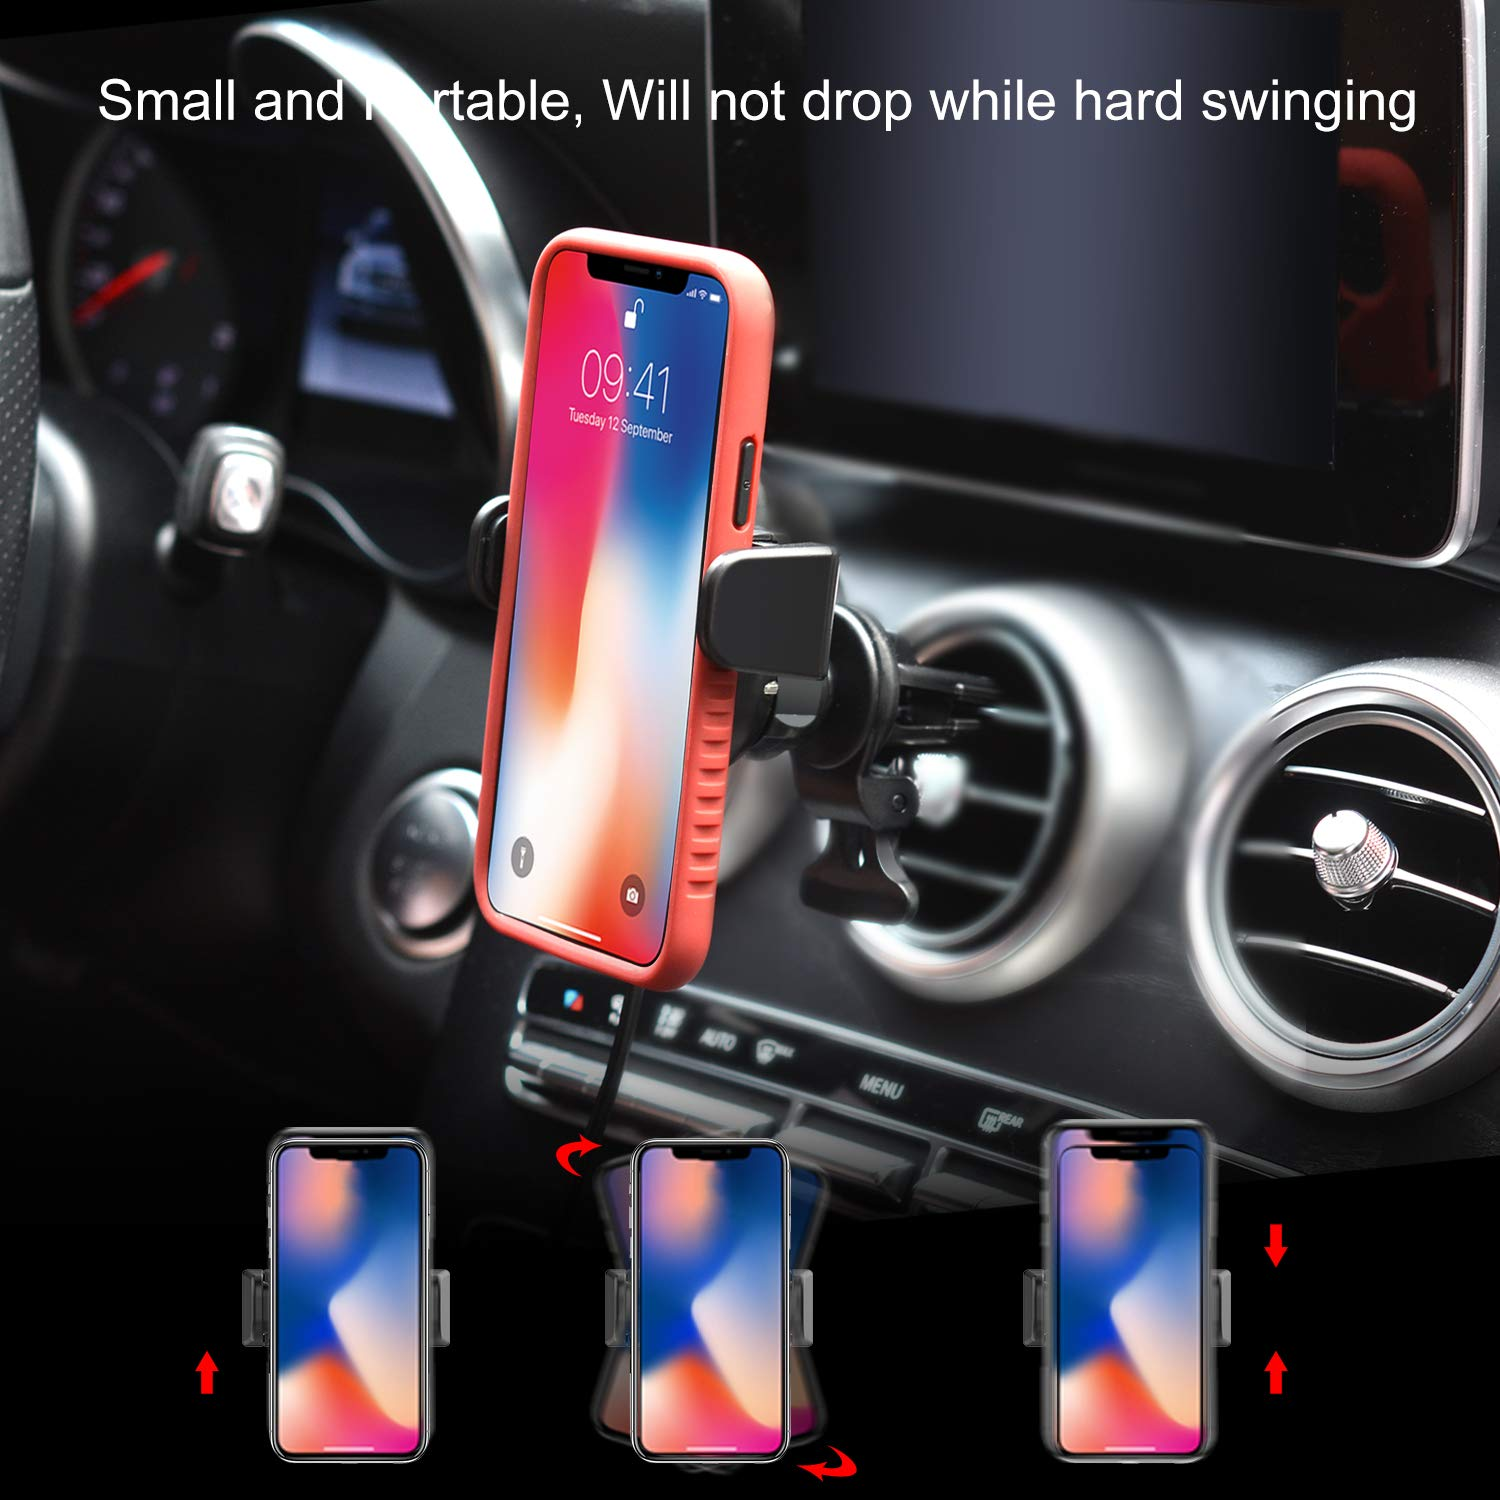 Car Mount Holder Auto Clamping Air Vent Universal Car Phone Holder with Sensor for iPhone Xs XS Max X 8 8 Plus 7 7 Plus SE 6s 6 Plus 6 5s 5 4s car Mount Sensor